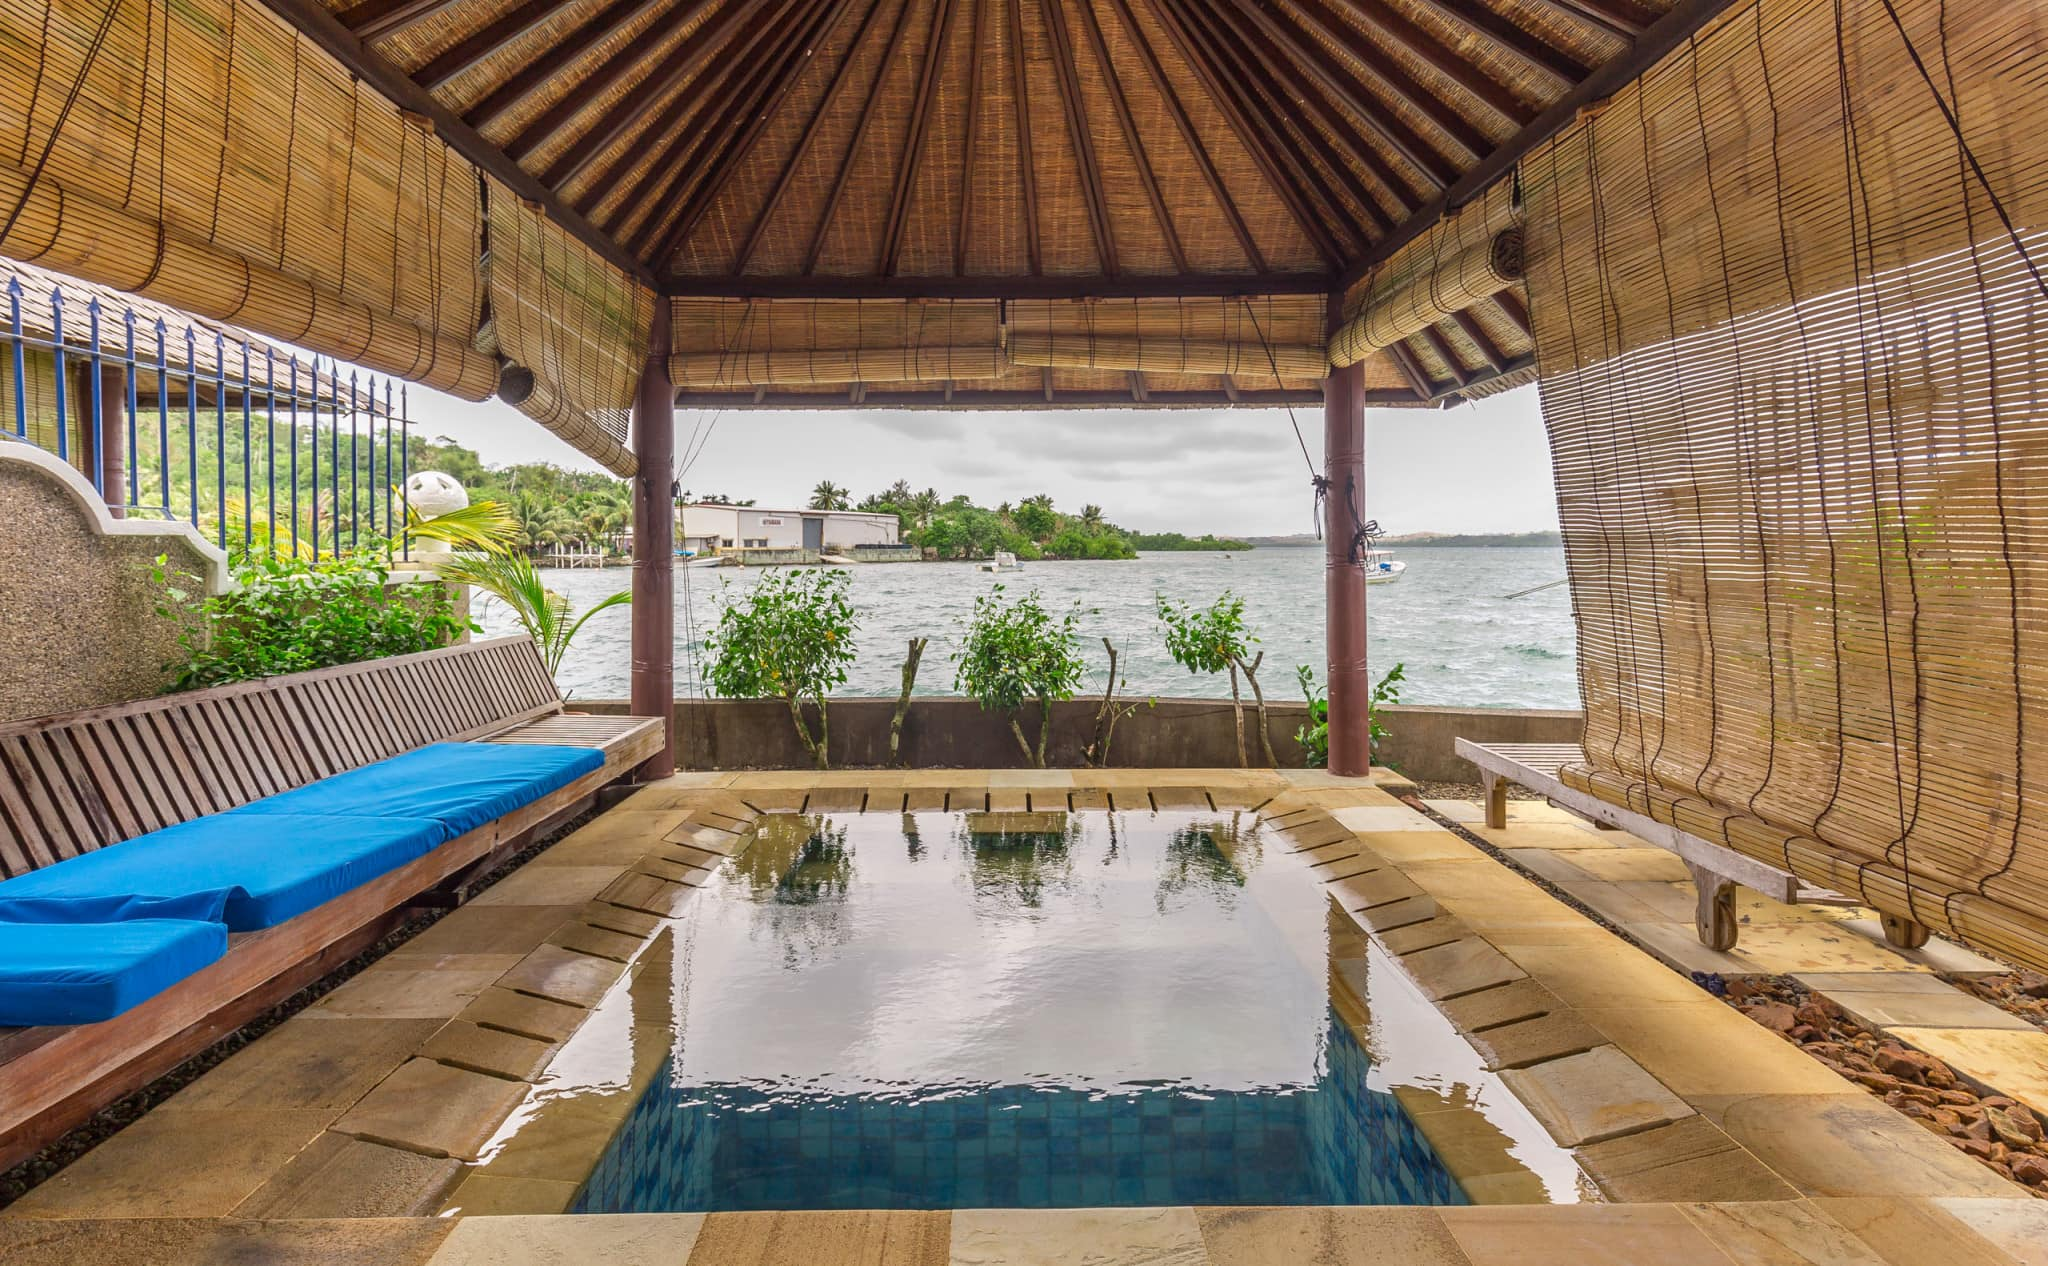 MICRONESIA FSM - Manta Ray Bay Resort Yap offers luxury on remote Yap Island